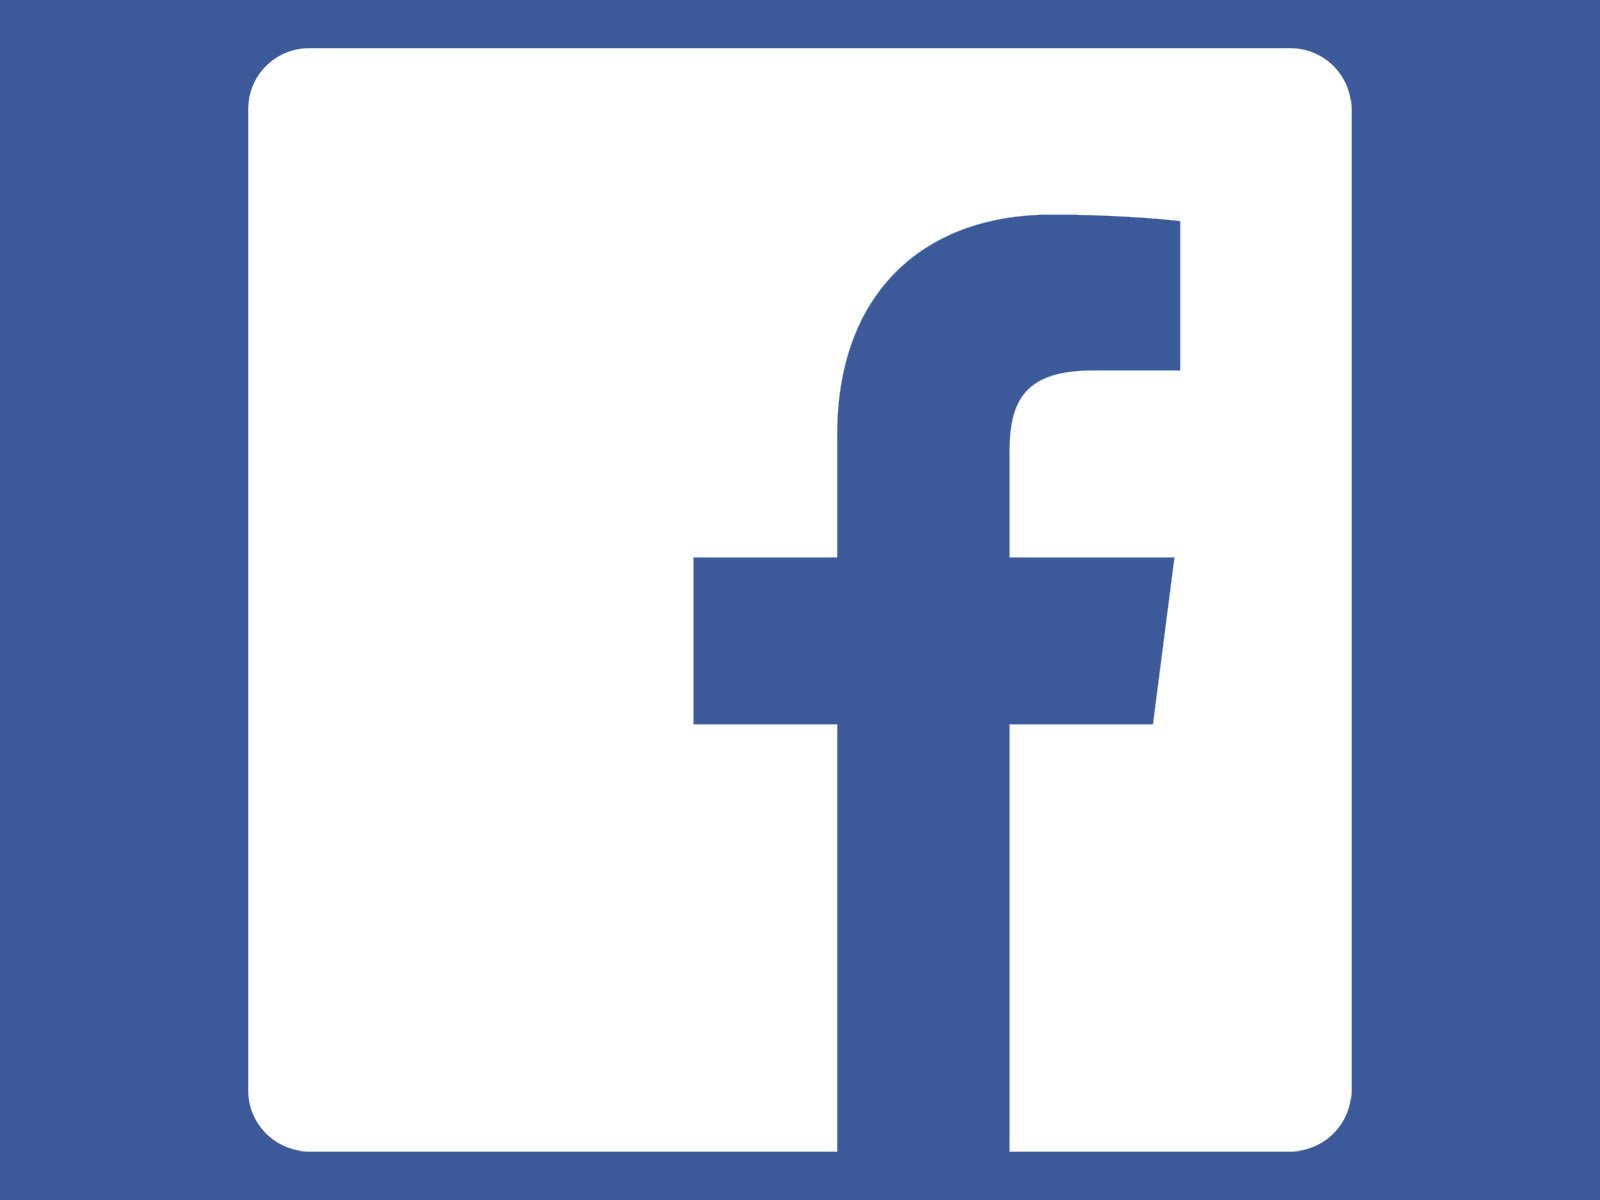 facebook logo facebook symbol meaning history and evolution rh 1000logos net facebook logo official facebook logo official